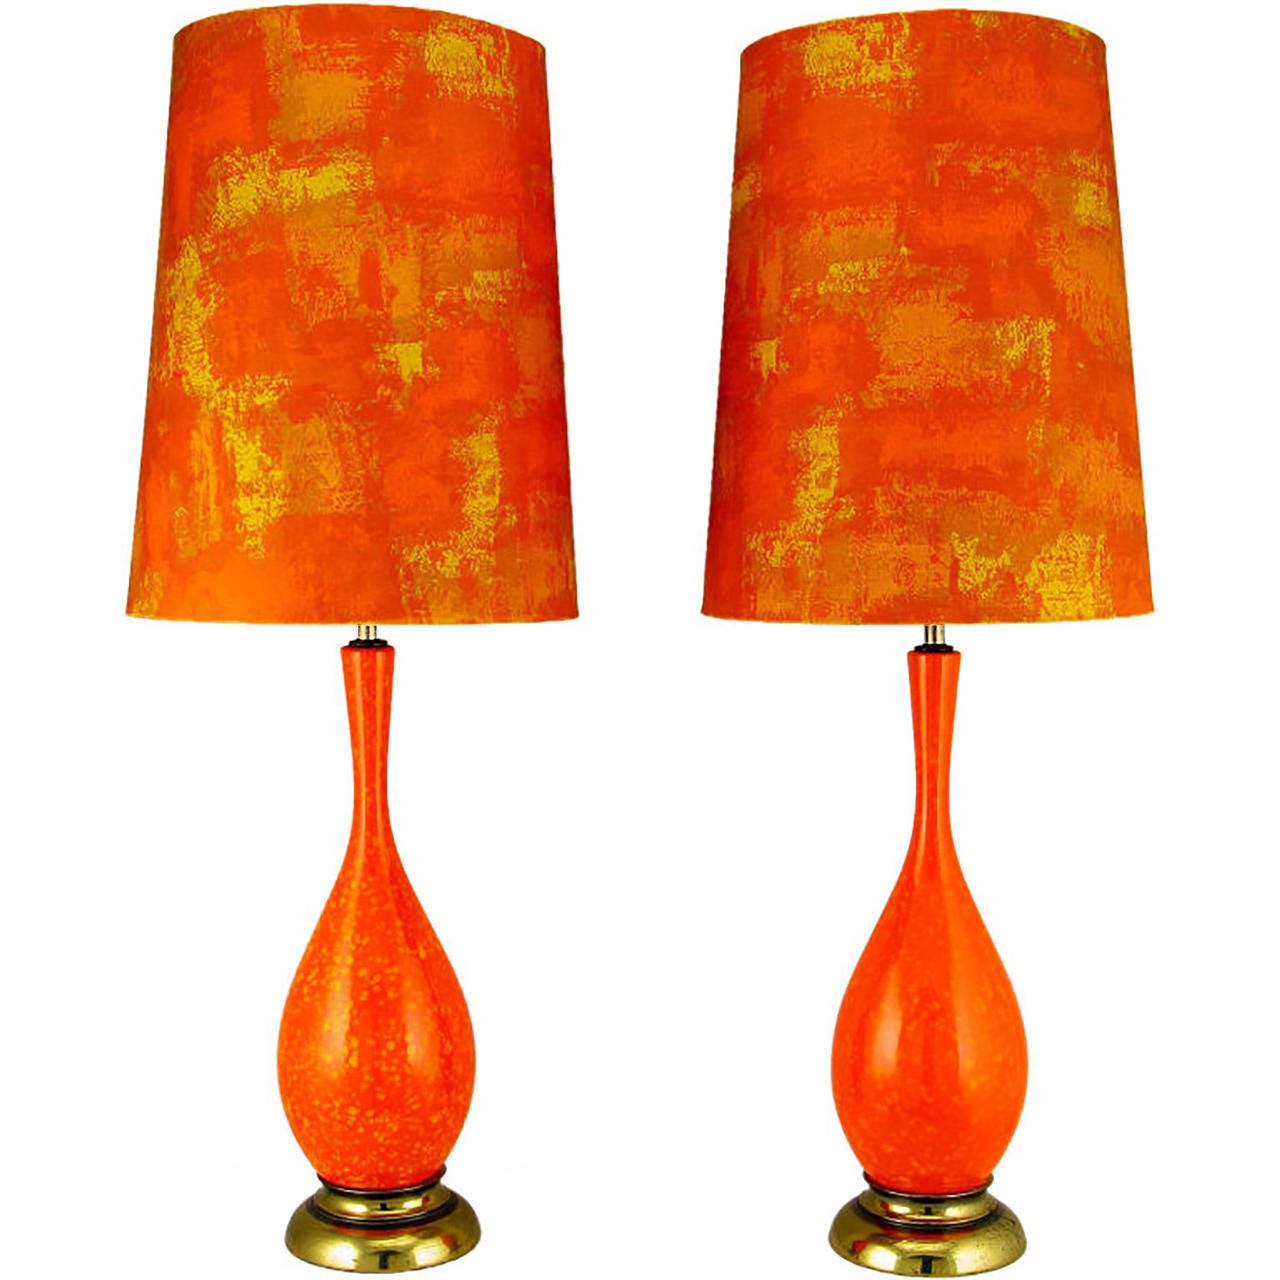 Pair of persimmon and gamboge stippled glaze table lamps with hand pair of persimmon gamboge stippled glaze table lamps with hand painted shades 1 geotapseo Gallery